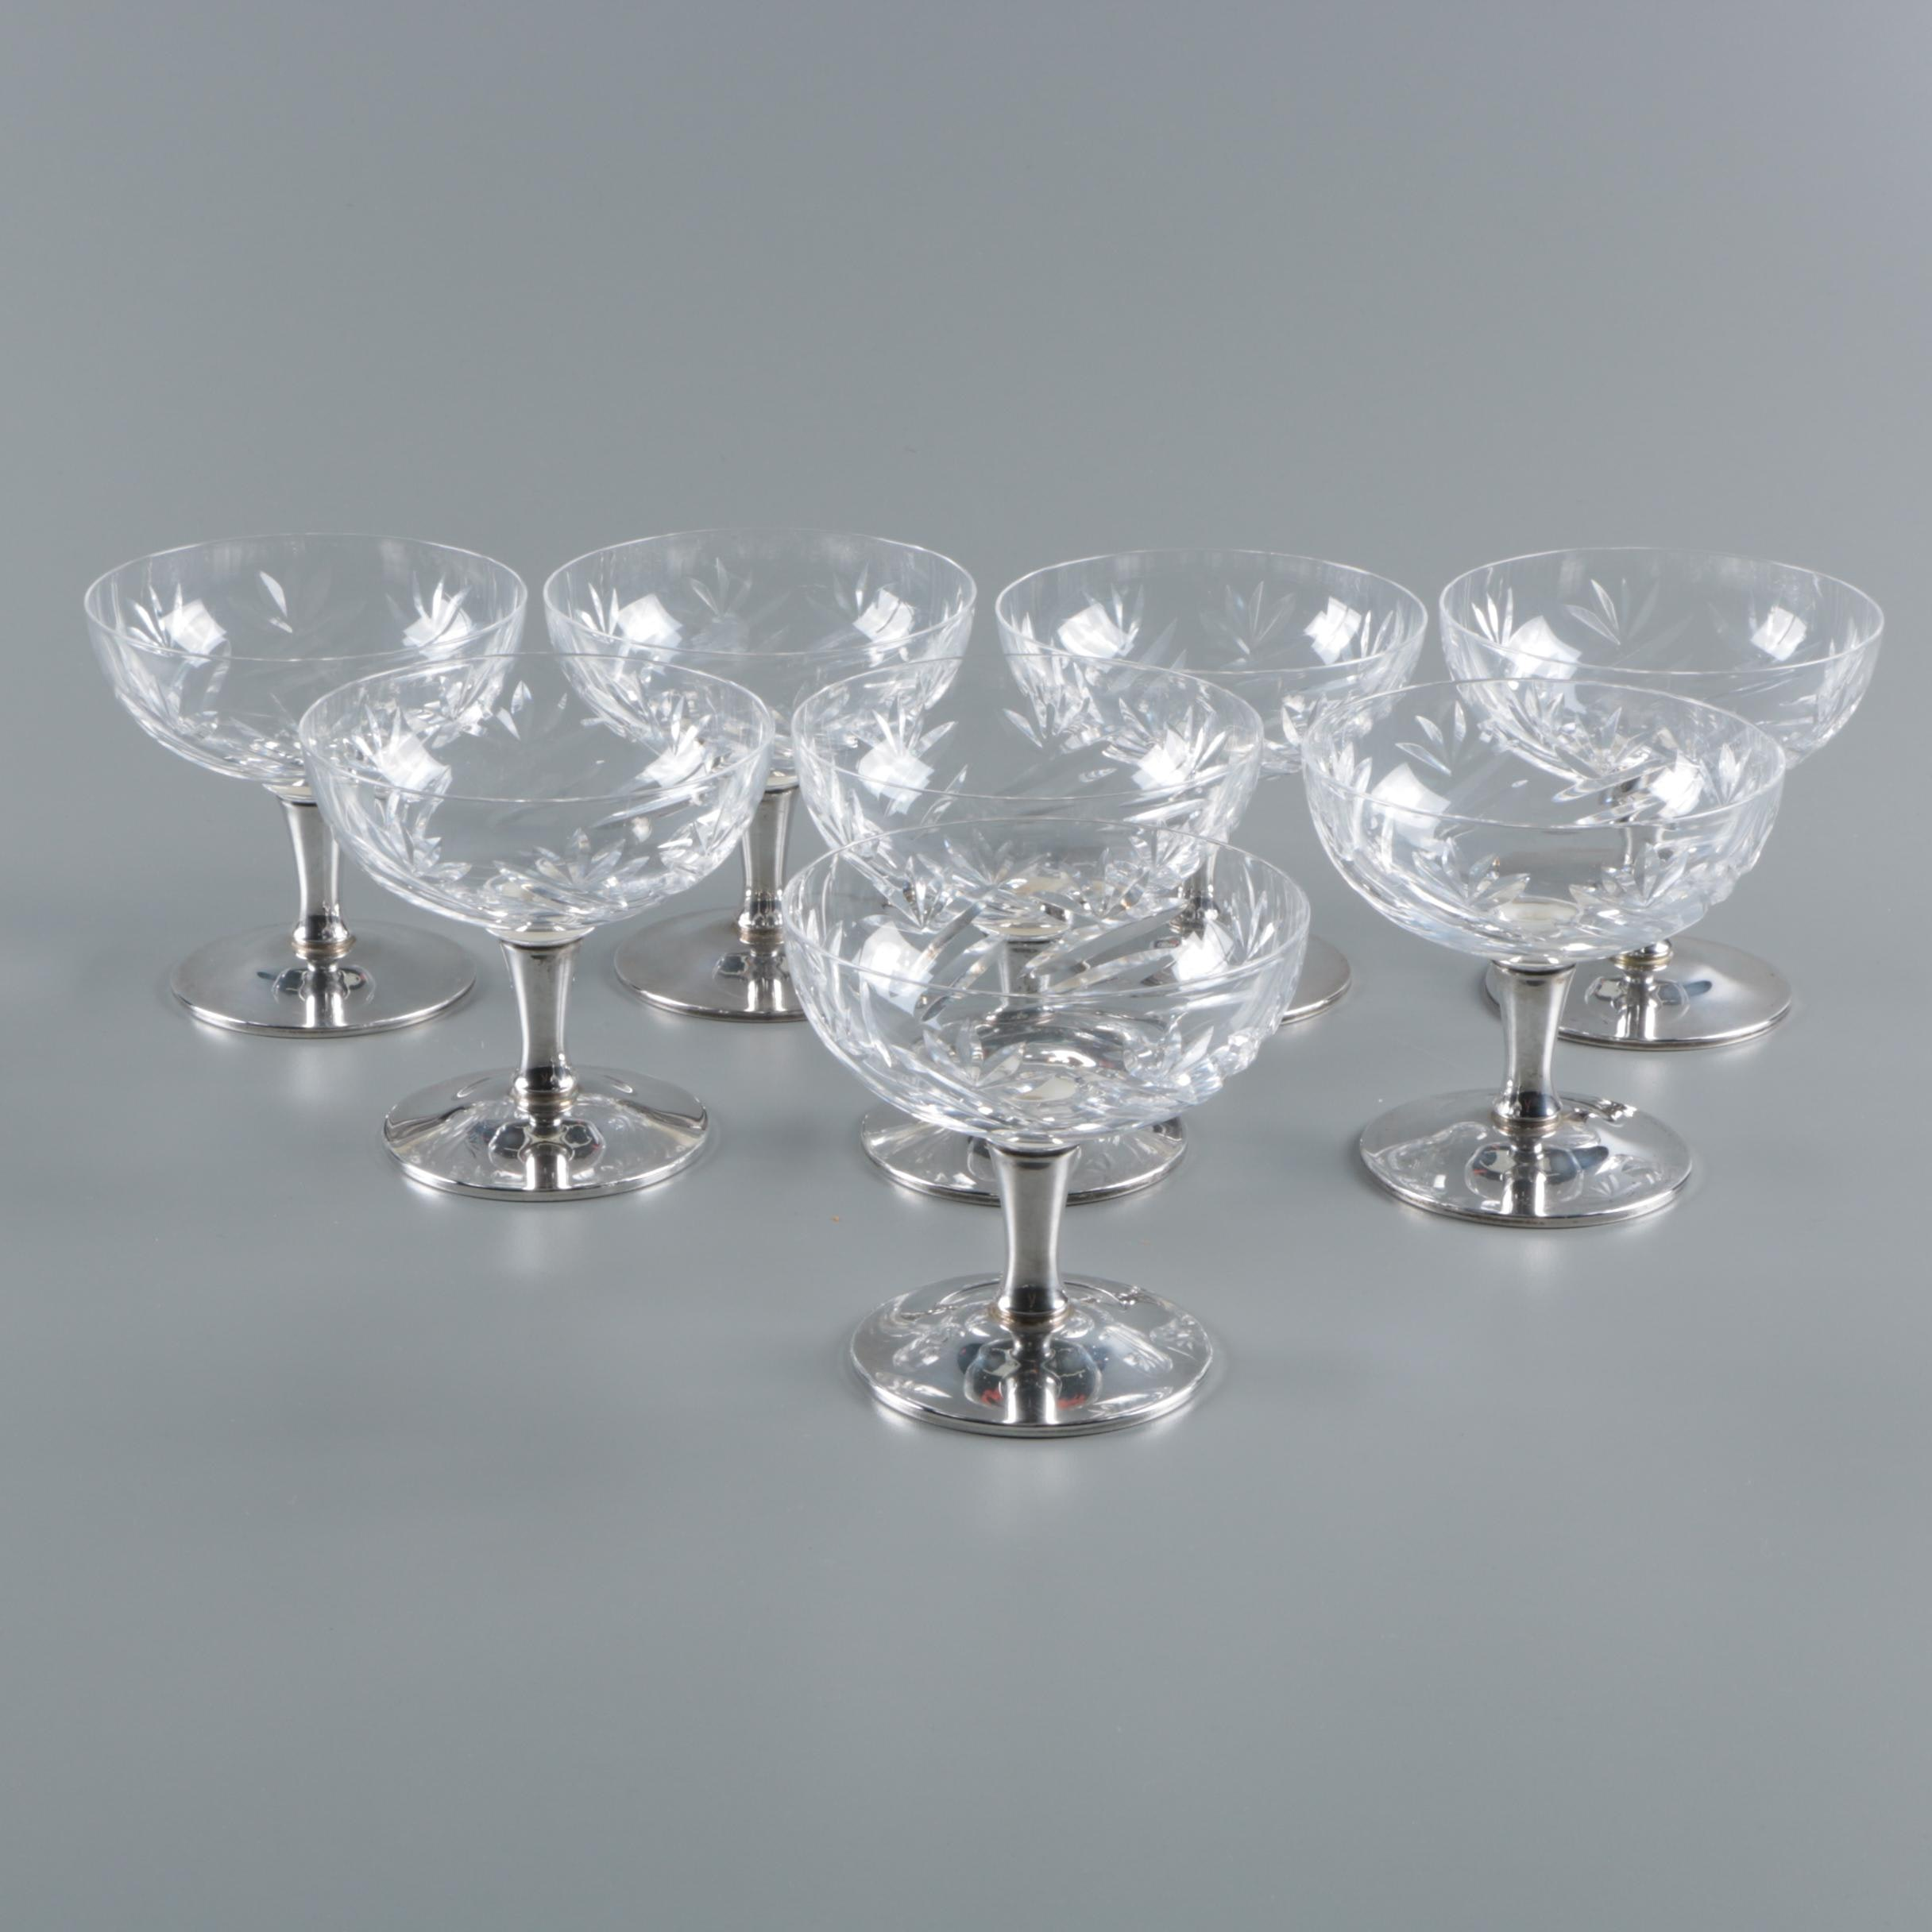 Gorham Crystal and Weighted Sterling Silver Champagne Coupes